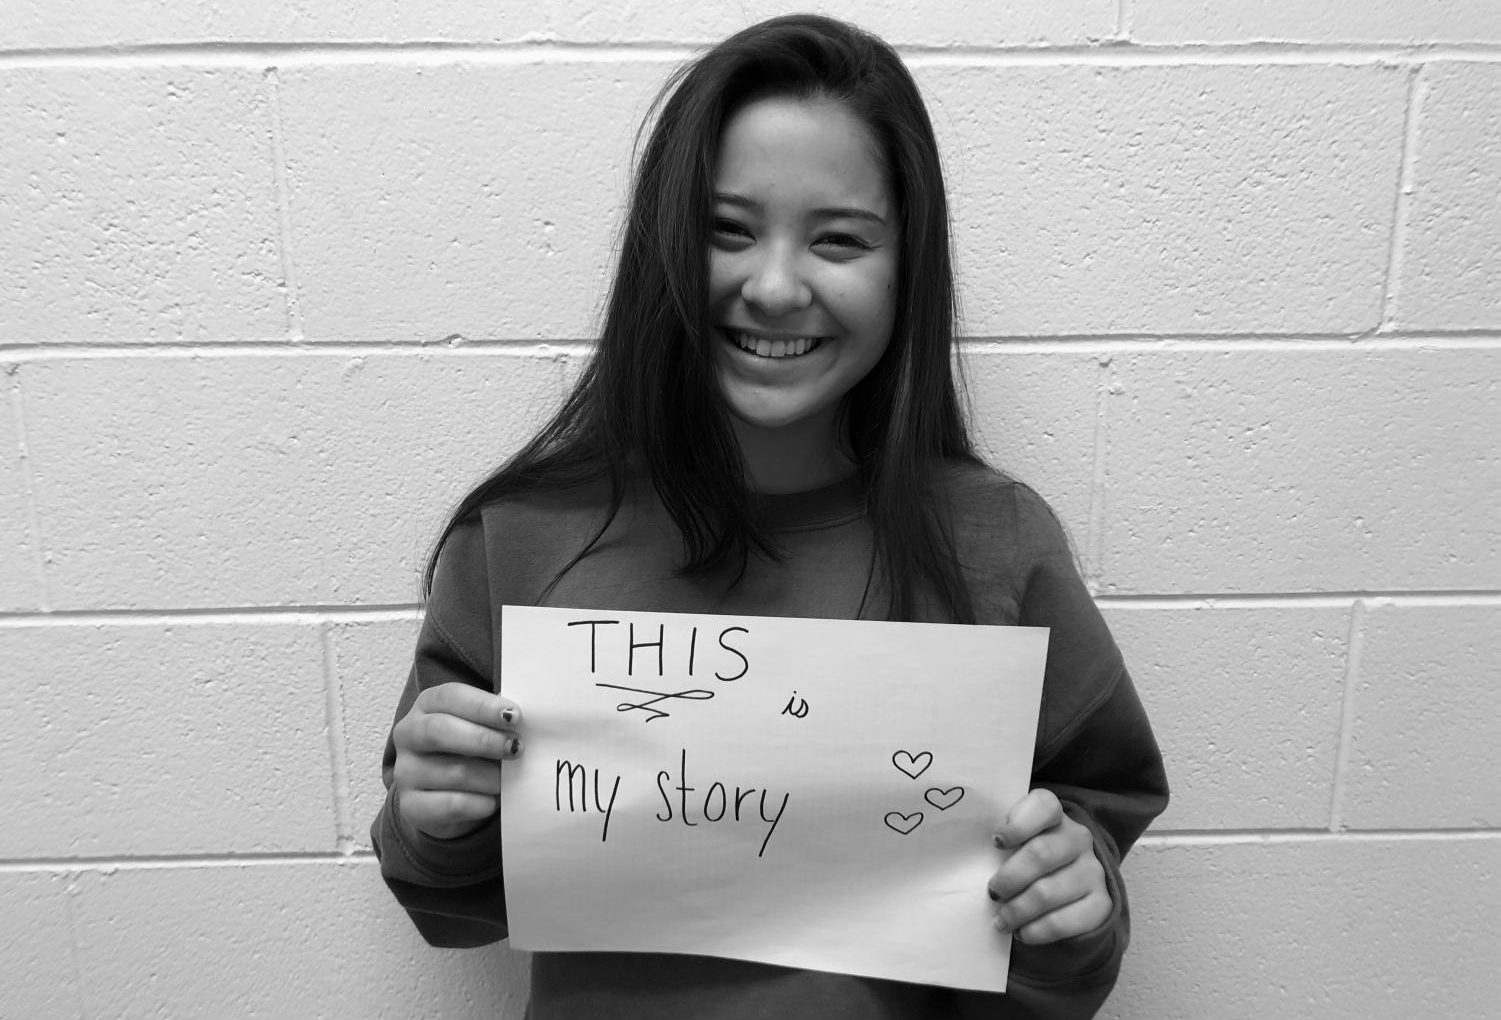 This is the first installment of This Is My Story, an eight part series. In this article, PV sophomore Elise Schicker talks about her journey with depression.